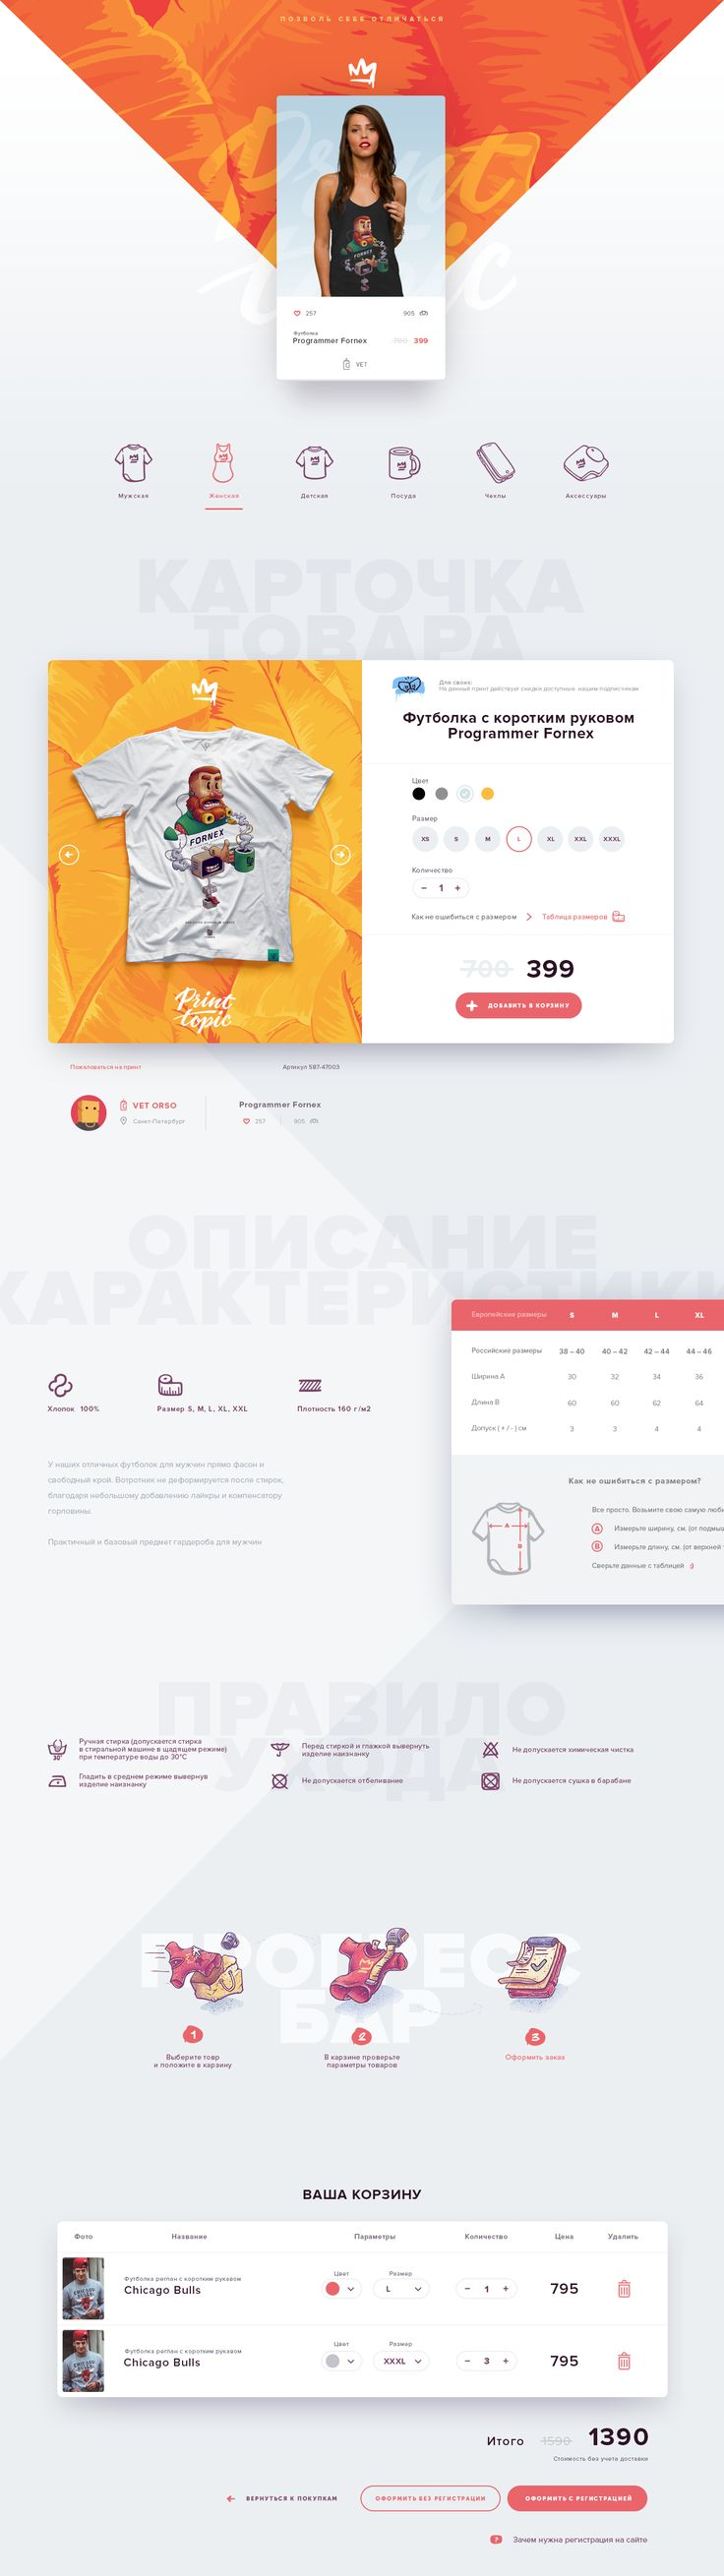 Print Topic Shop | UI on Behance